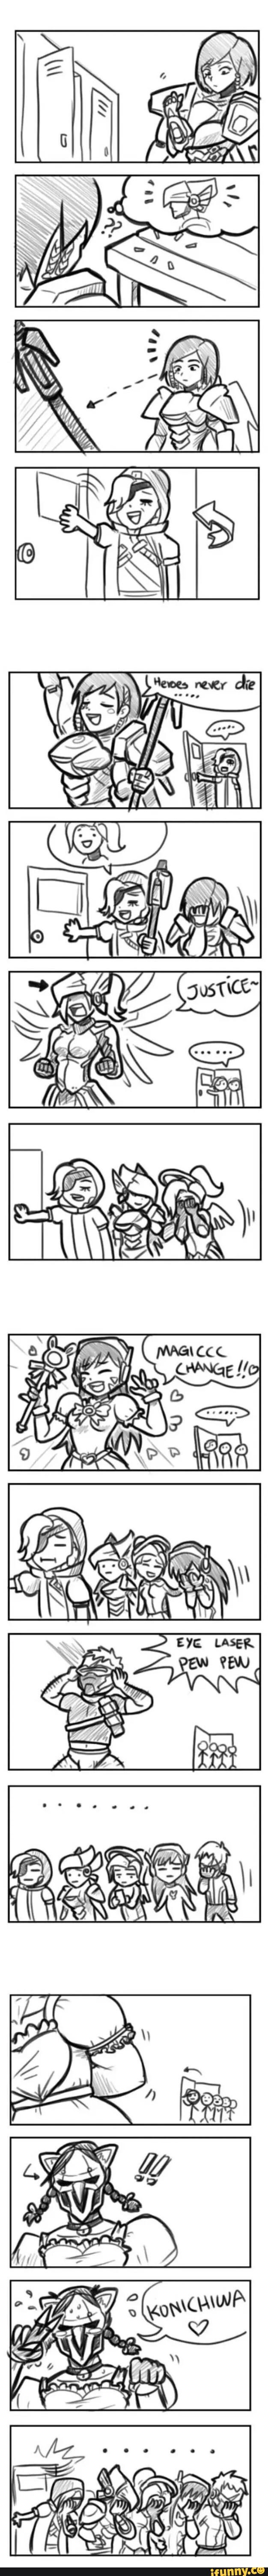 overwatch, comic, comics